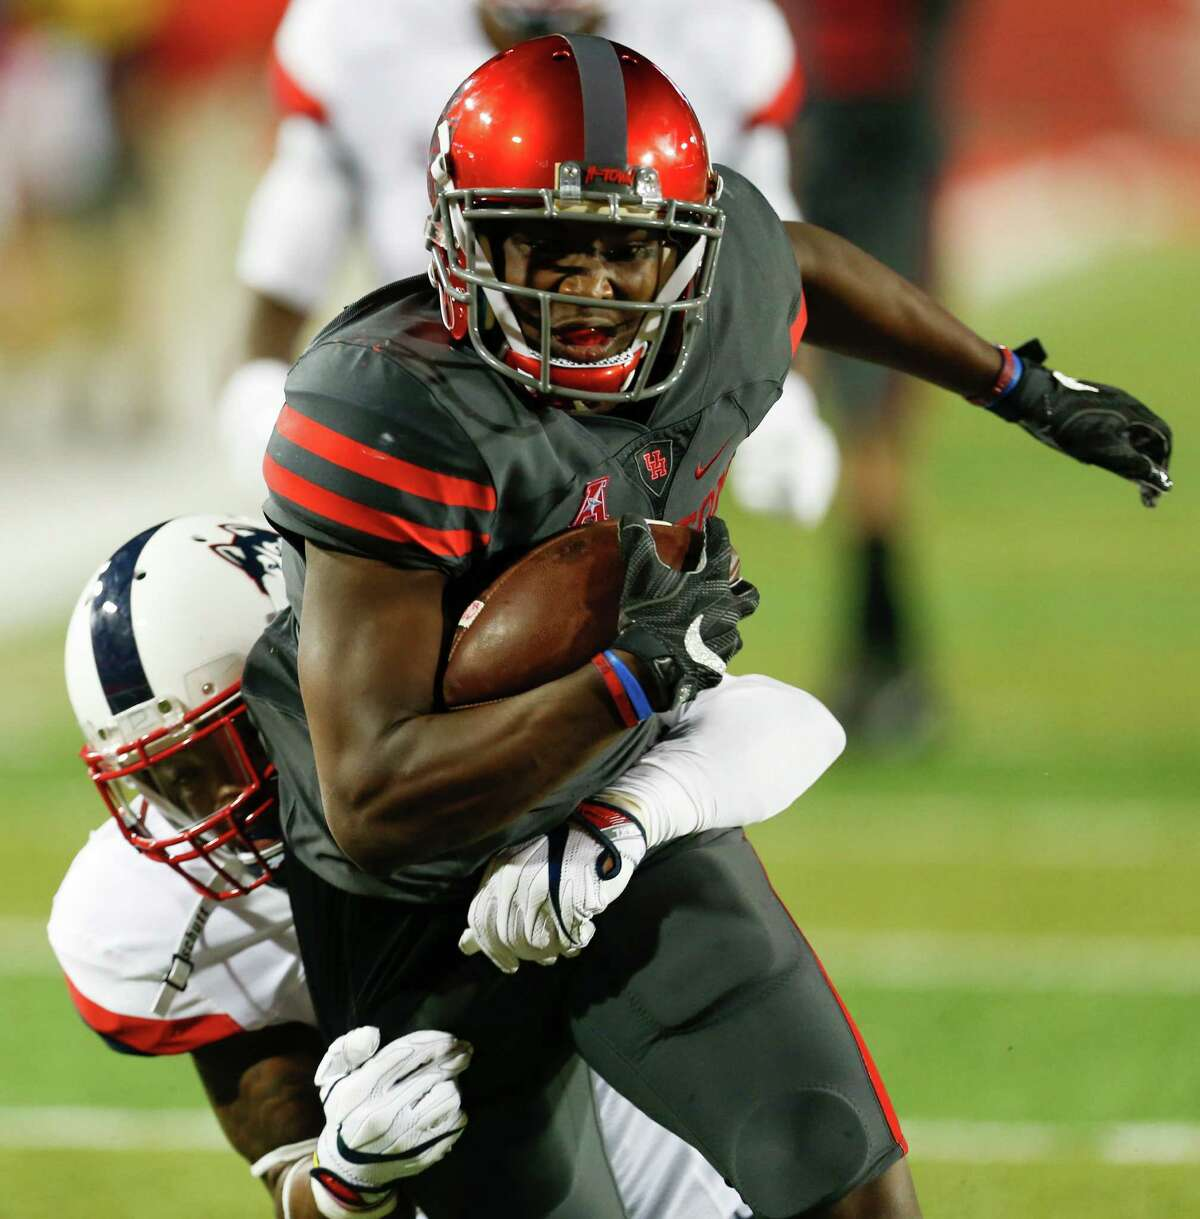 STOCK UP Linell Bonner: Bonner has become Greg Ward Jr.'s favorite target. Against UConn, Bonner had 12 catches for 159 yards, both career highs, and a one-handed touchdown that was ESPN SportsCenter's Top Play after Thursday's game. It's the second time this season Bonner has made the list; his catch near the sideline in the Oklahoma opener also was on the top 10 list.